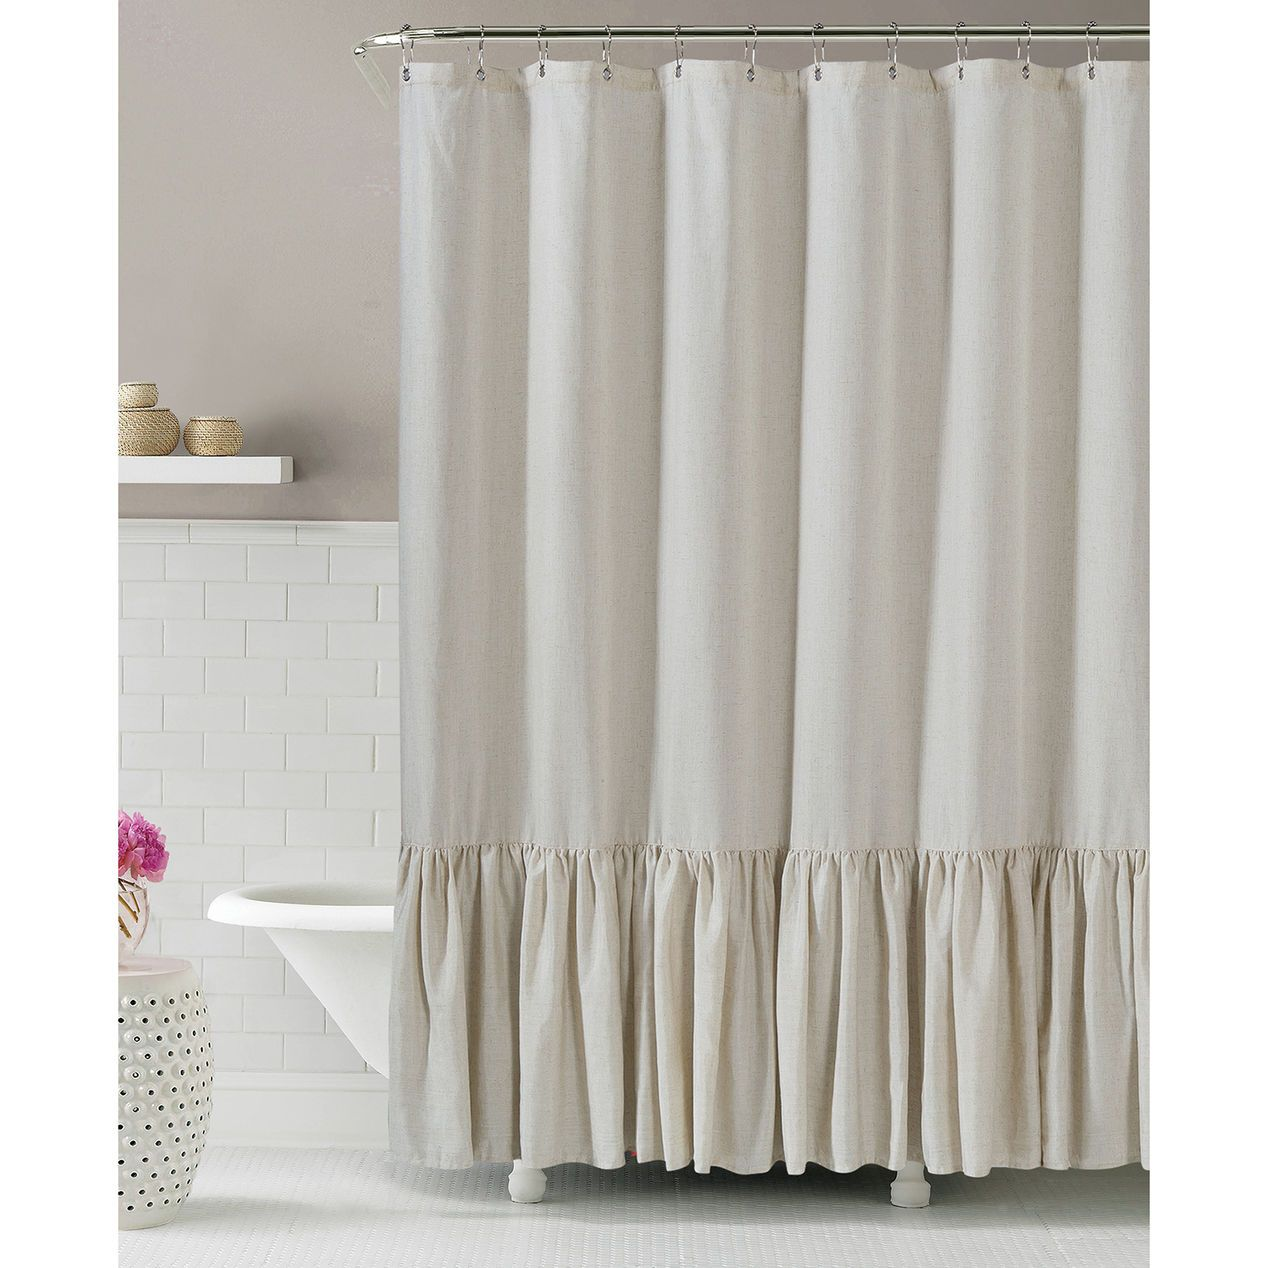 Gabriella Natural Linen Shower Curtain Ruffle Shower Curtains Custom Shower Curtains Fabric Shower Curtains